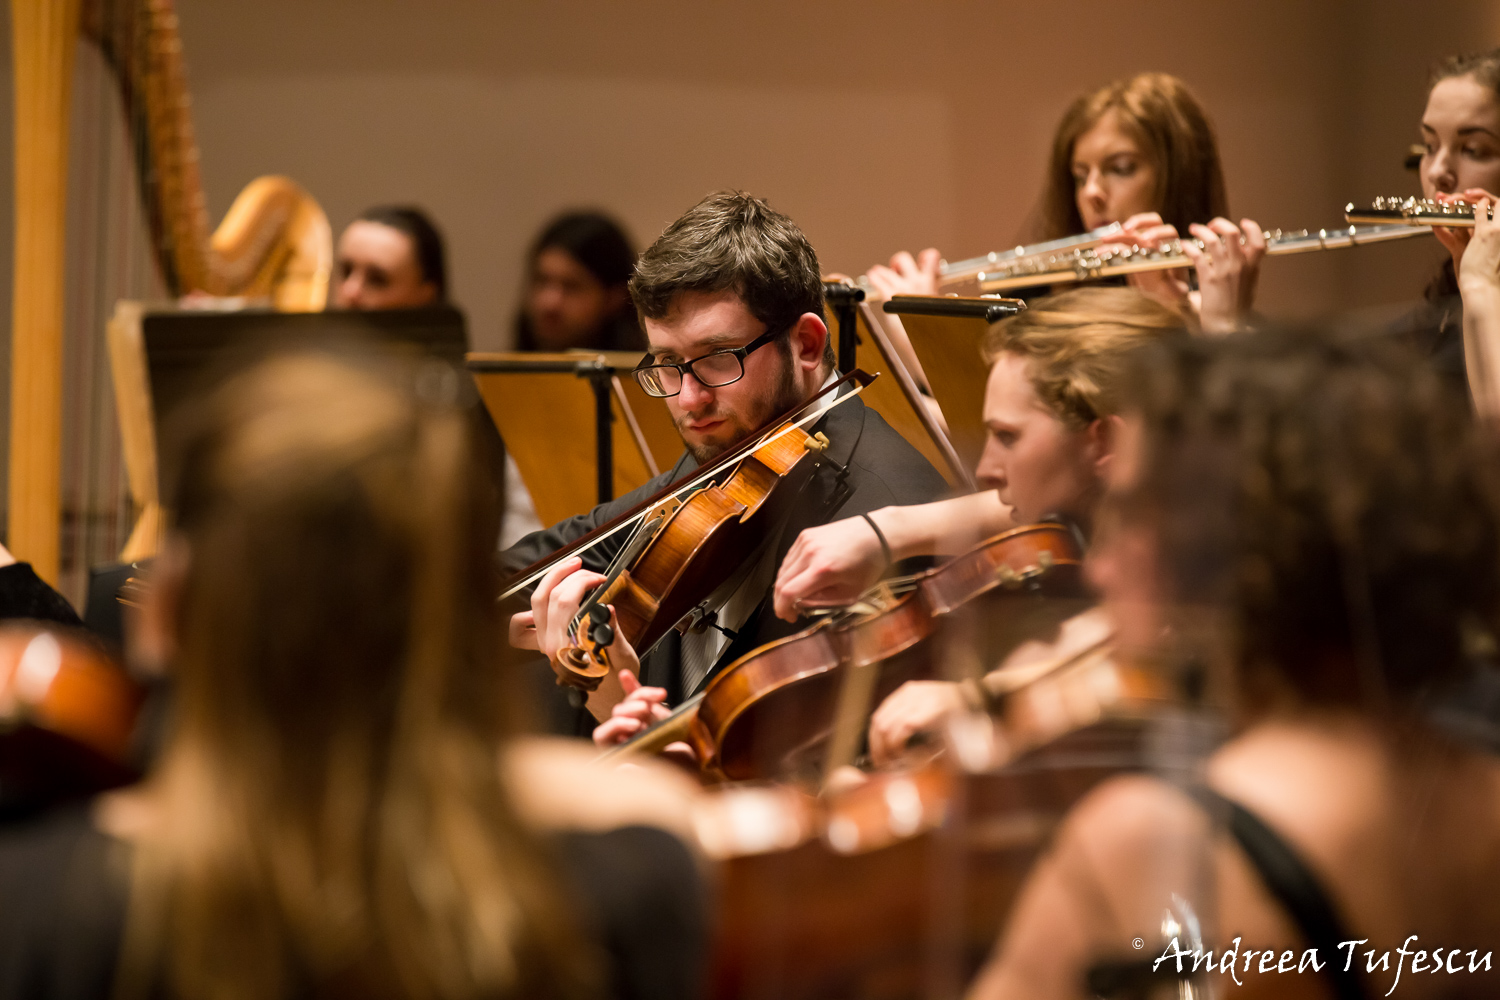 String players mid-concert - Light of Music Orchestra